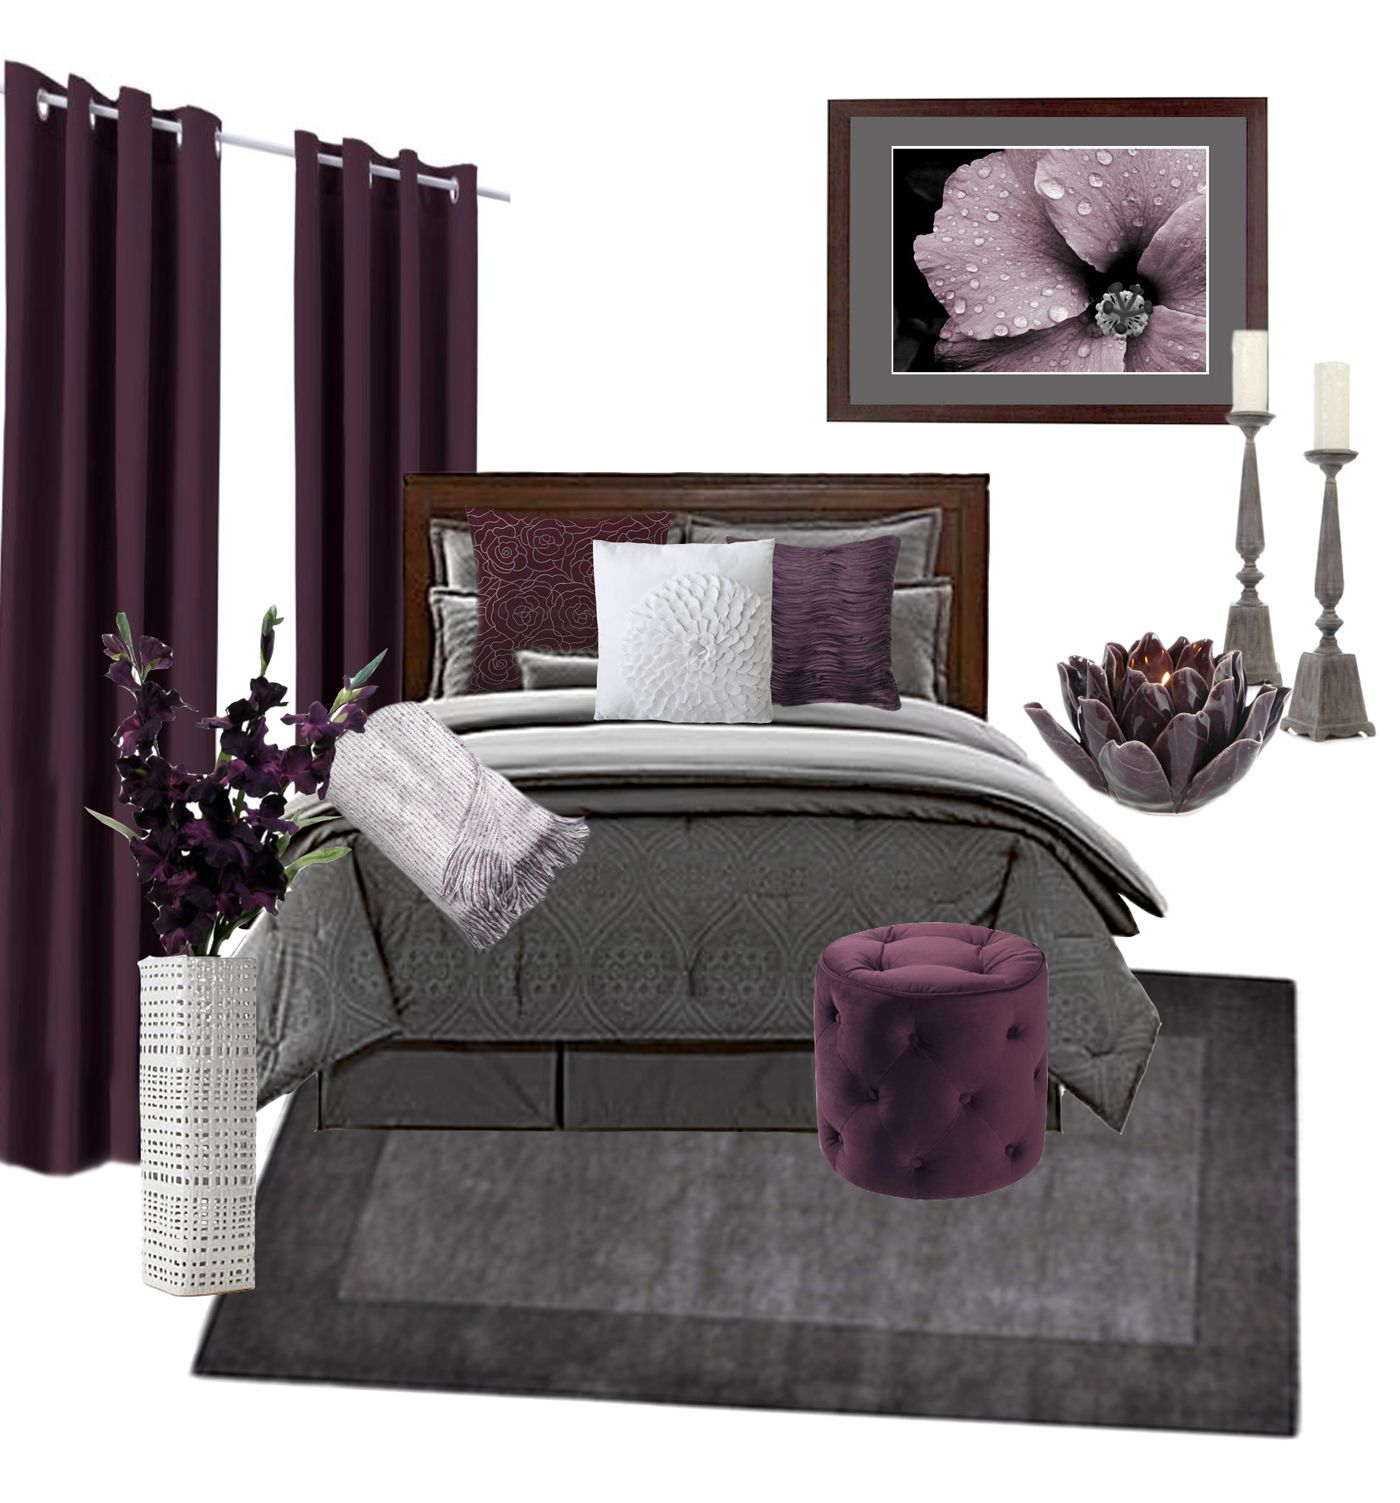 best 25 plum bedding ideas on pinterest plum bedroom 16781 | 03f946d29edeadb41a929f41ec28ec66